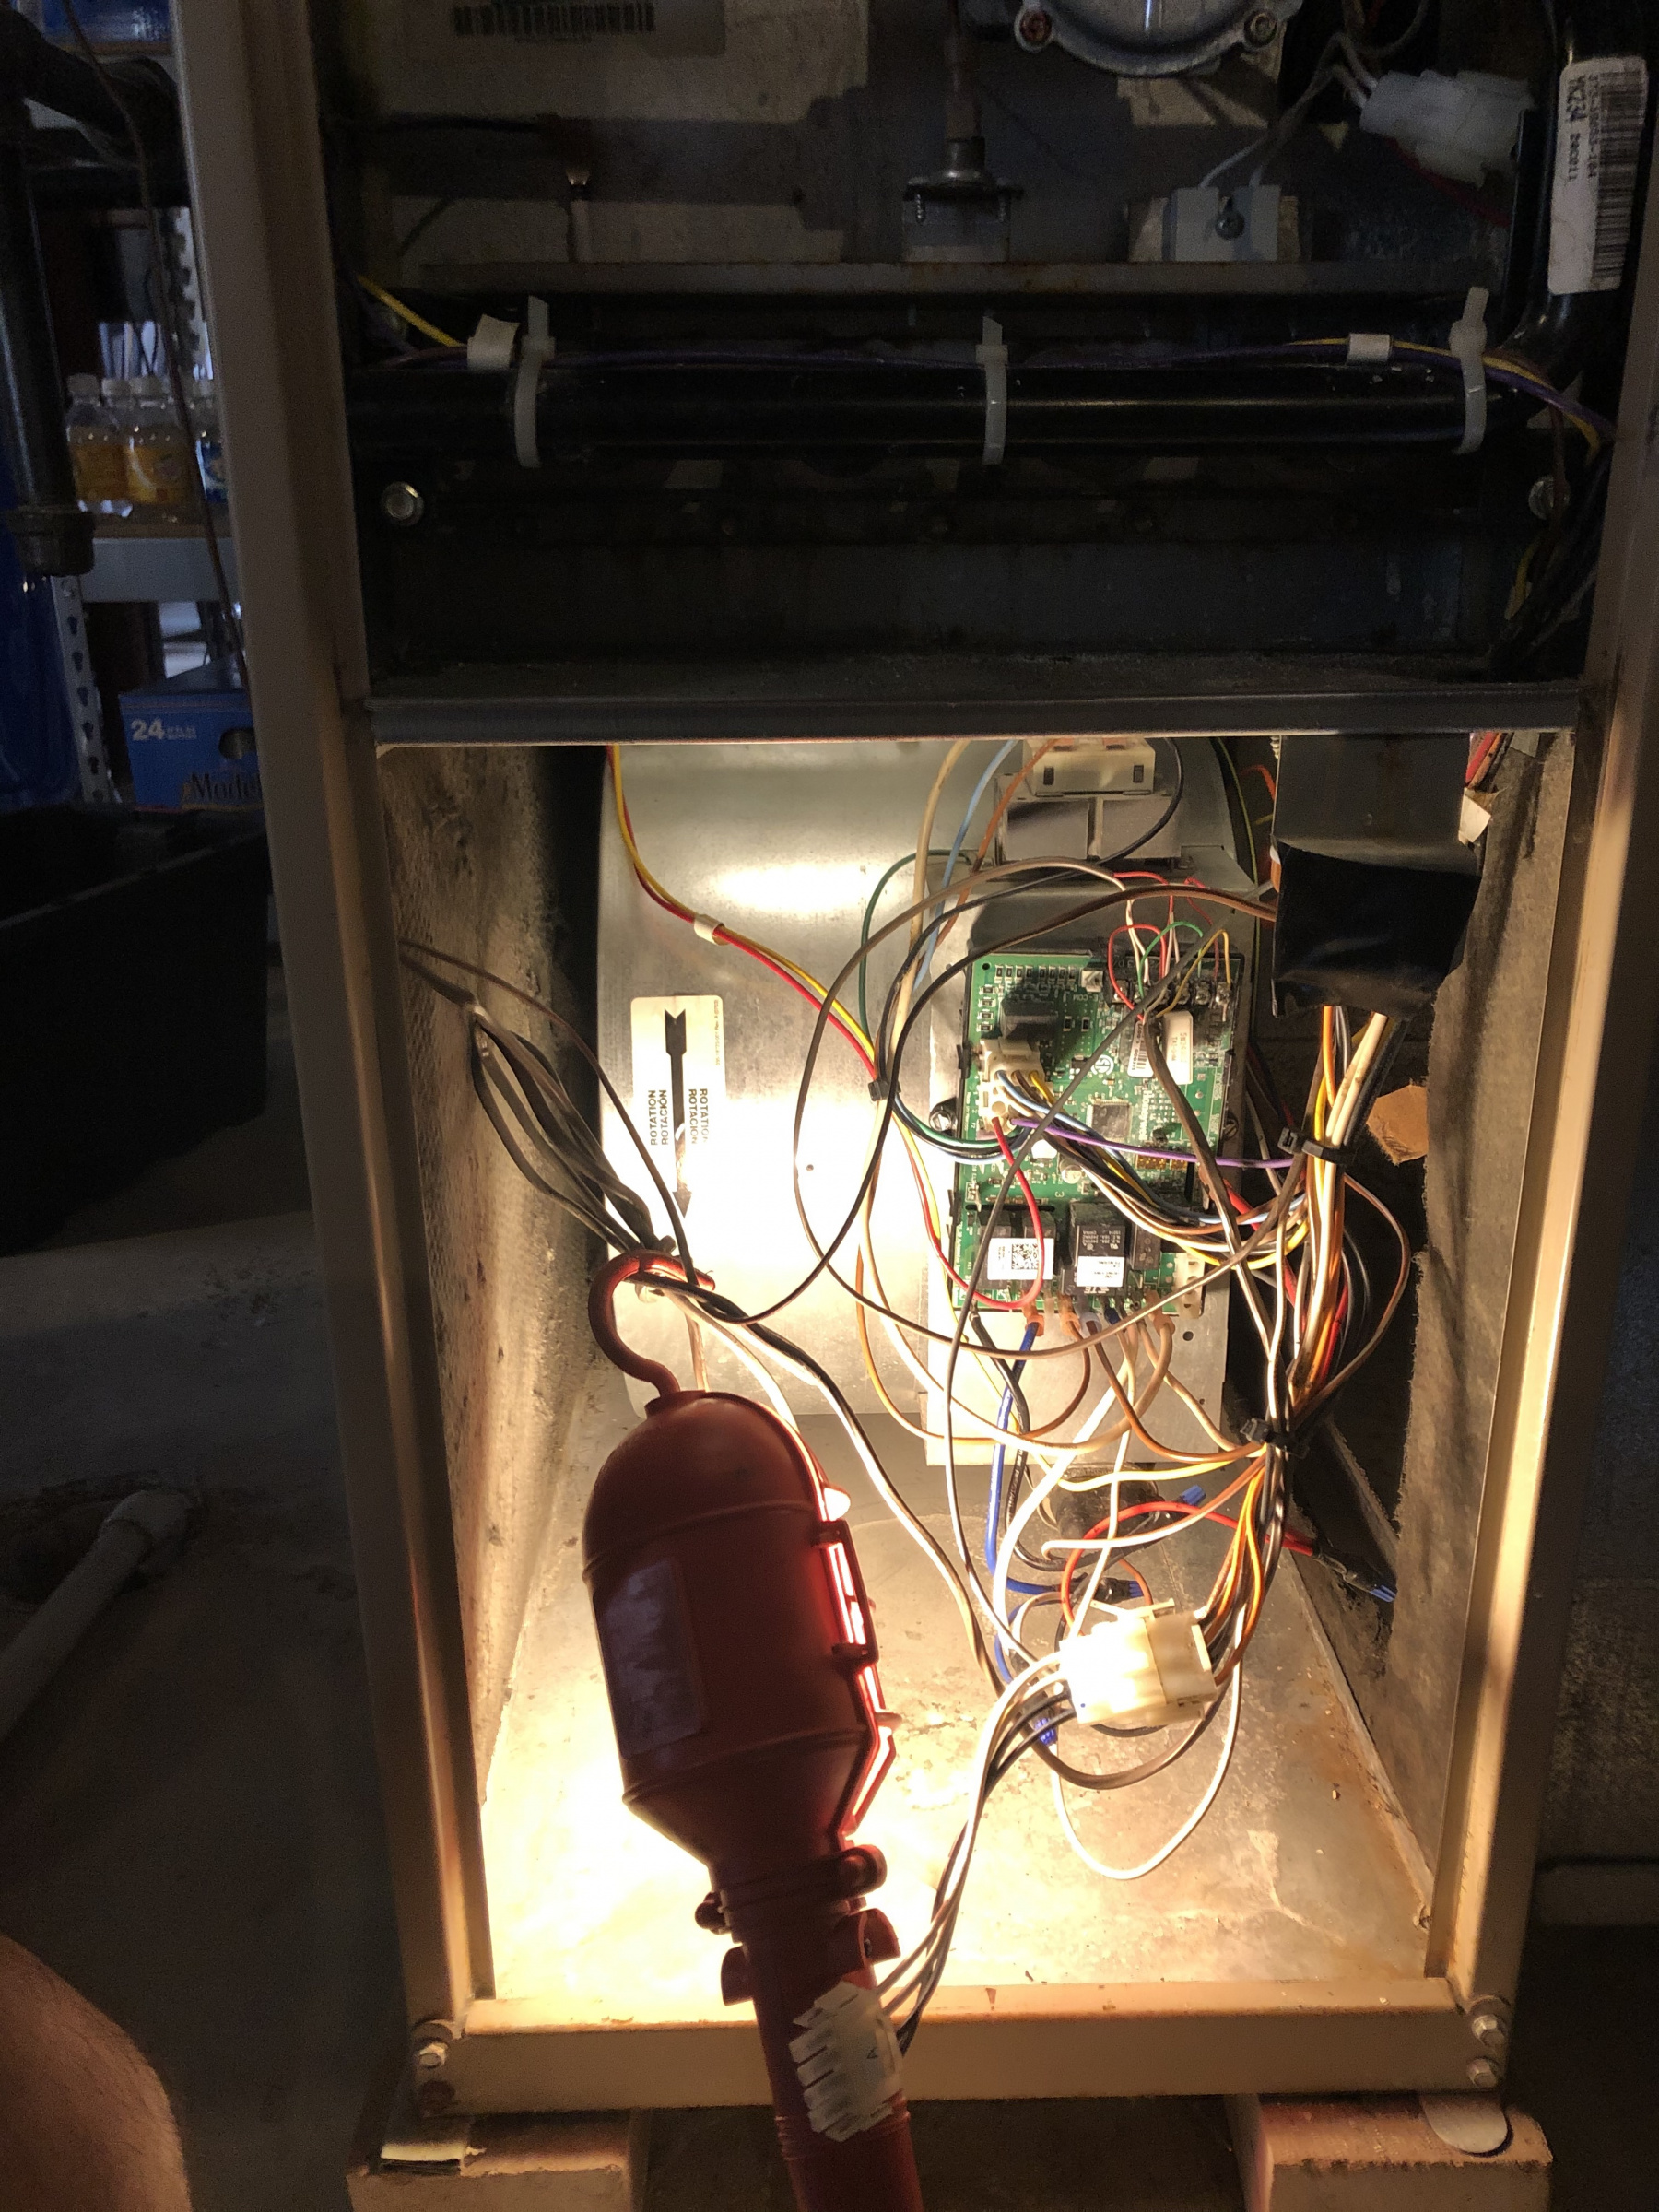 No heat - Inducer motor won't come on-img_1232.jpg